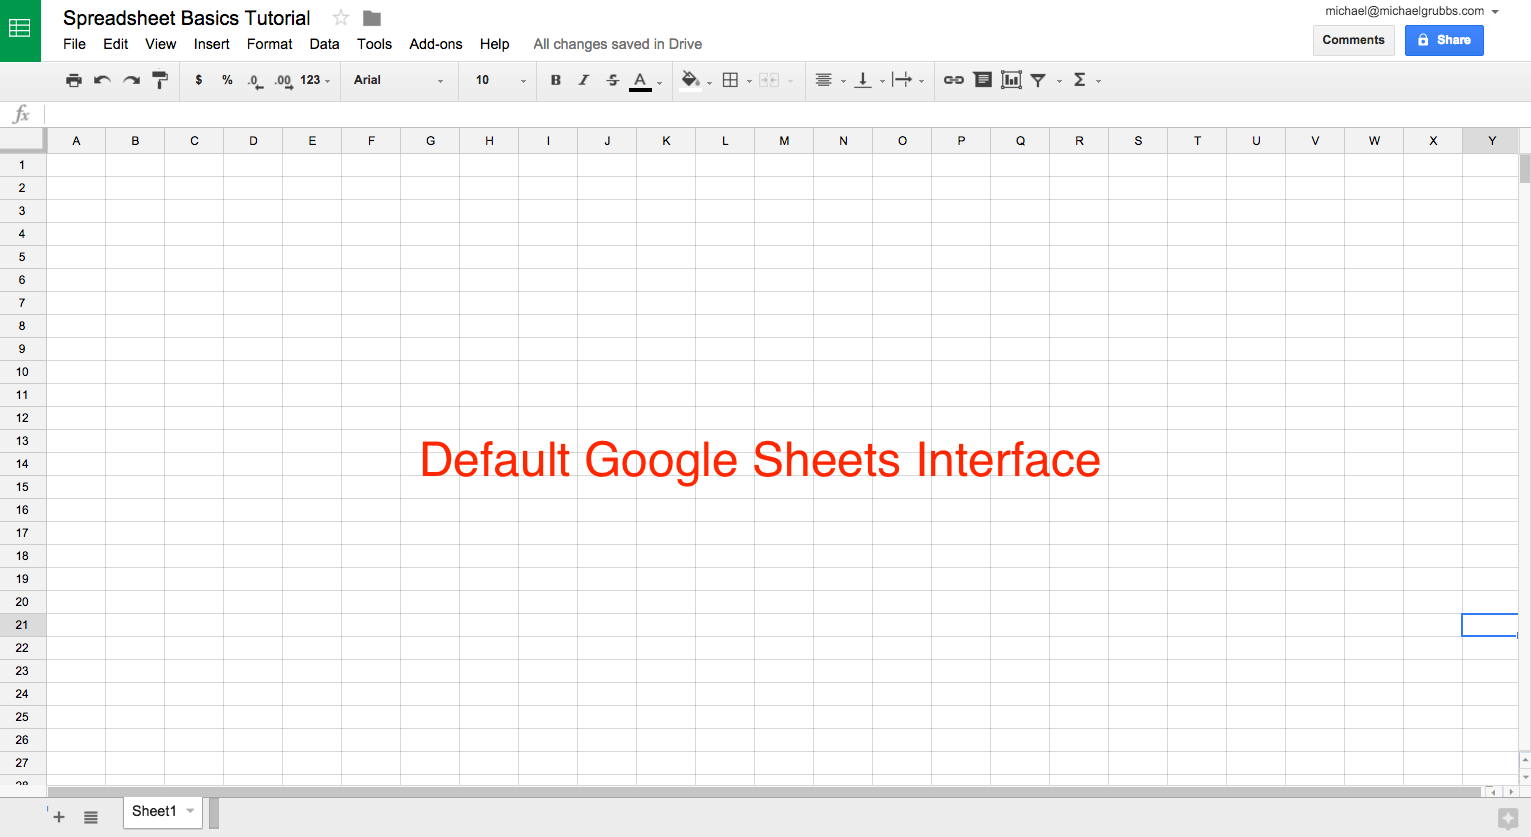 Free Google Spreadsheet For Google Sheets 101: The Beginner's Guide To Online Spreadsheets  The